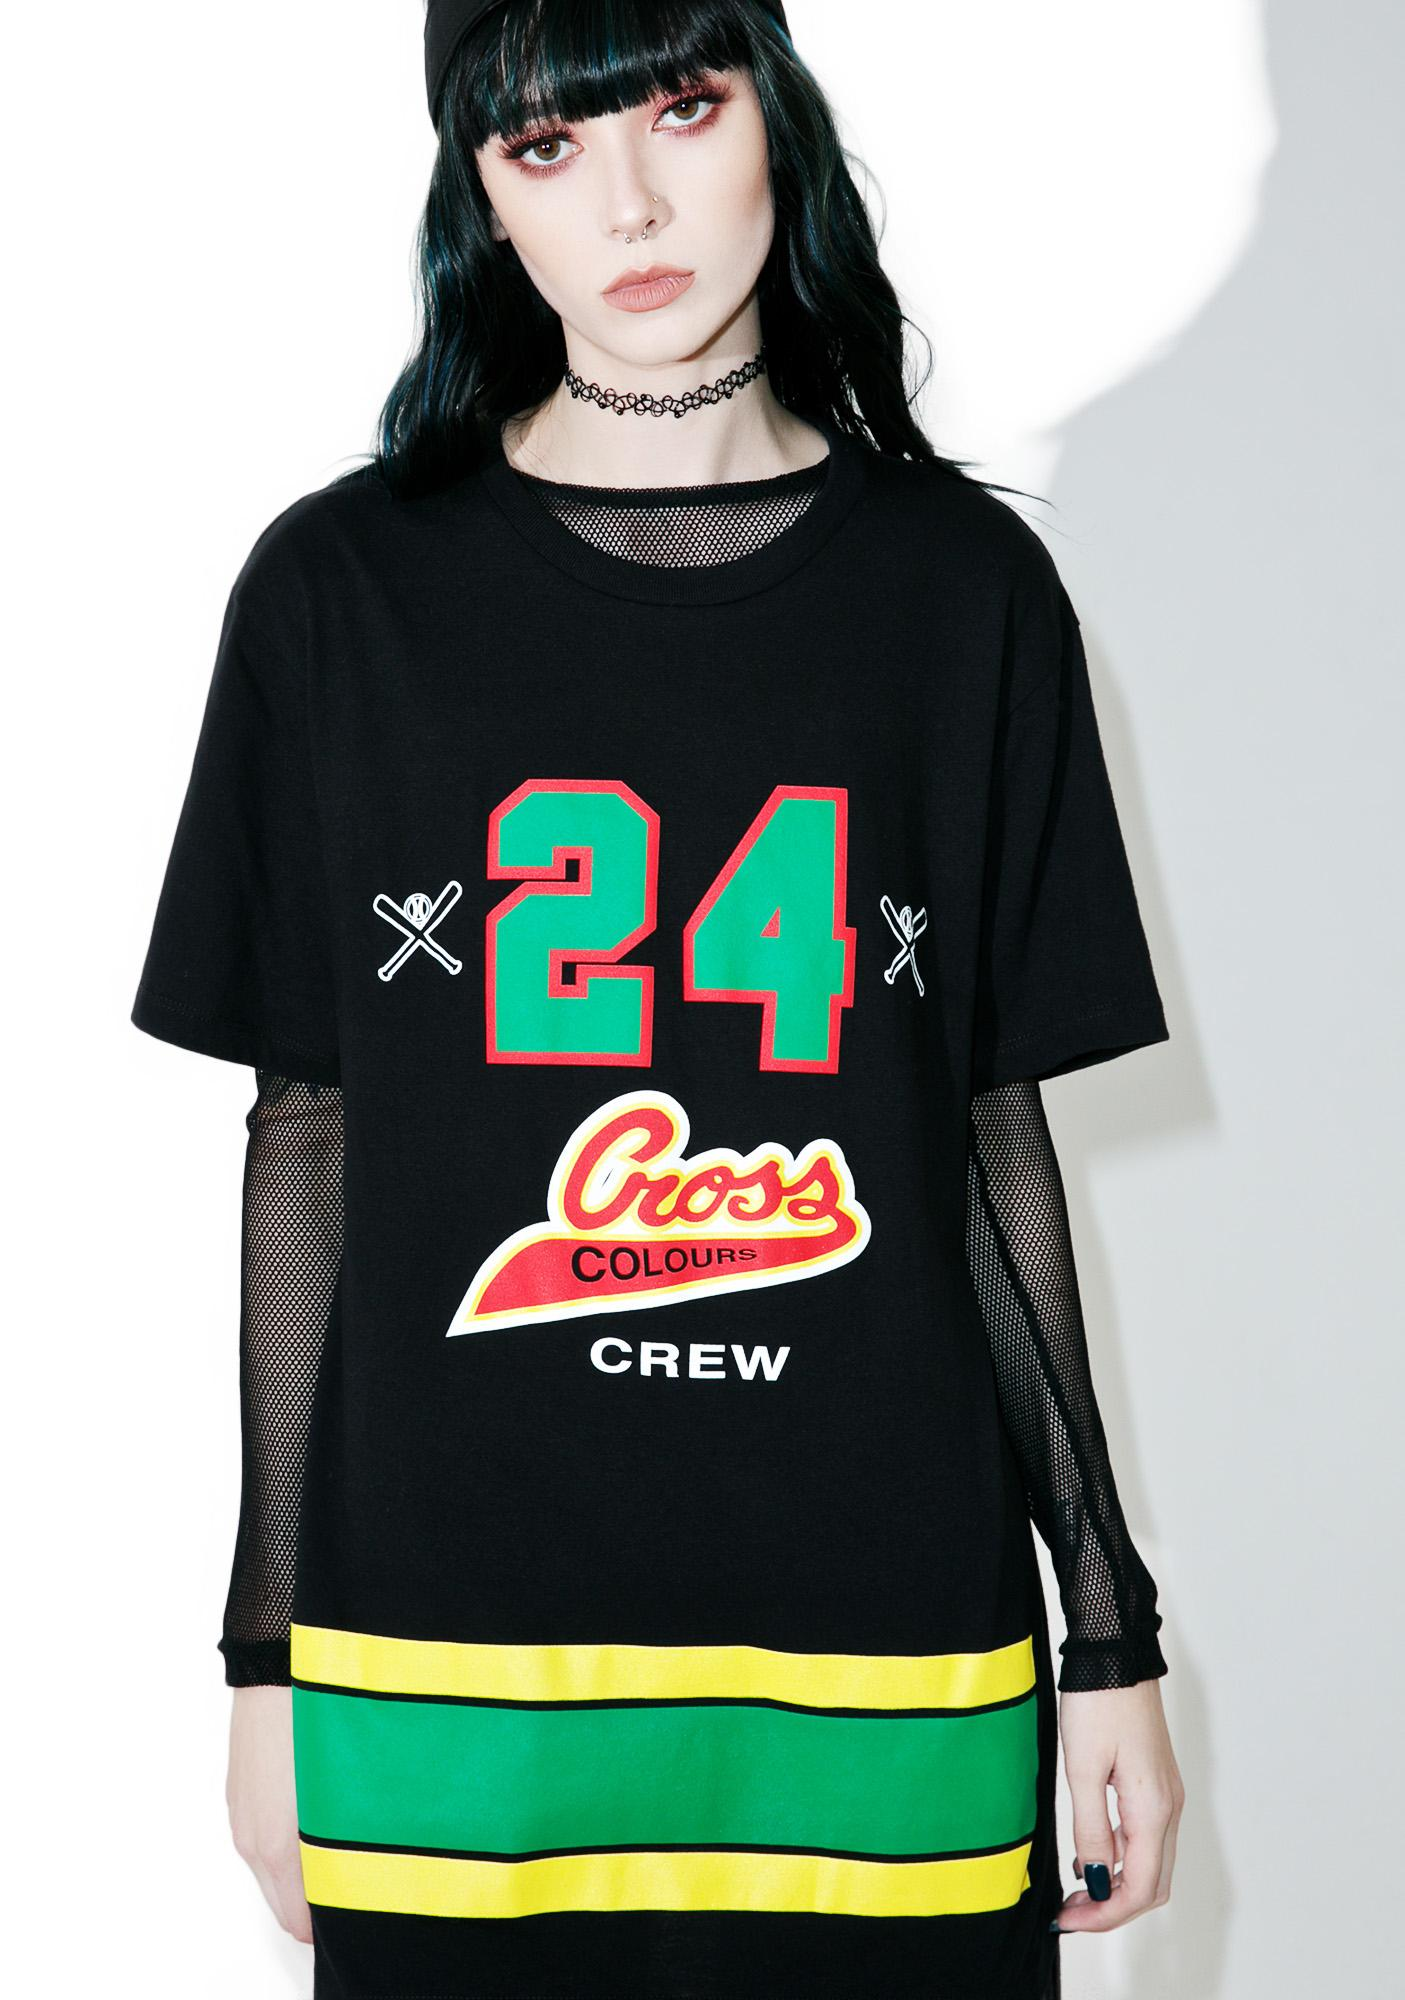 Cross Colours 24 Crew T-Shirt